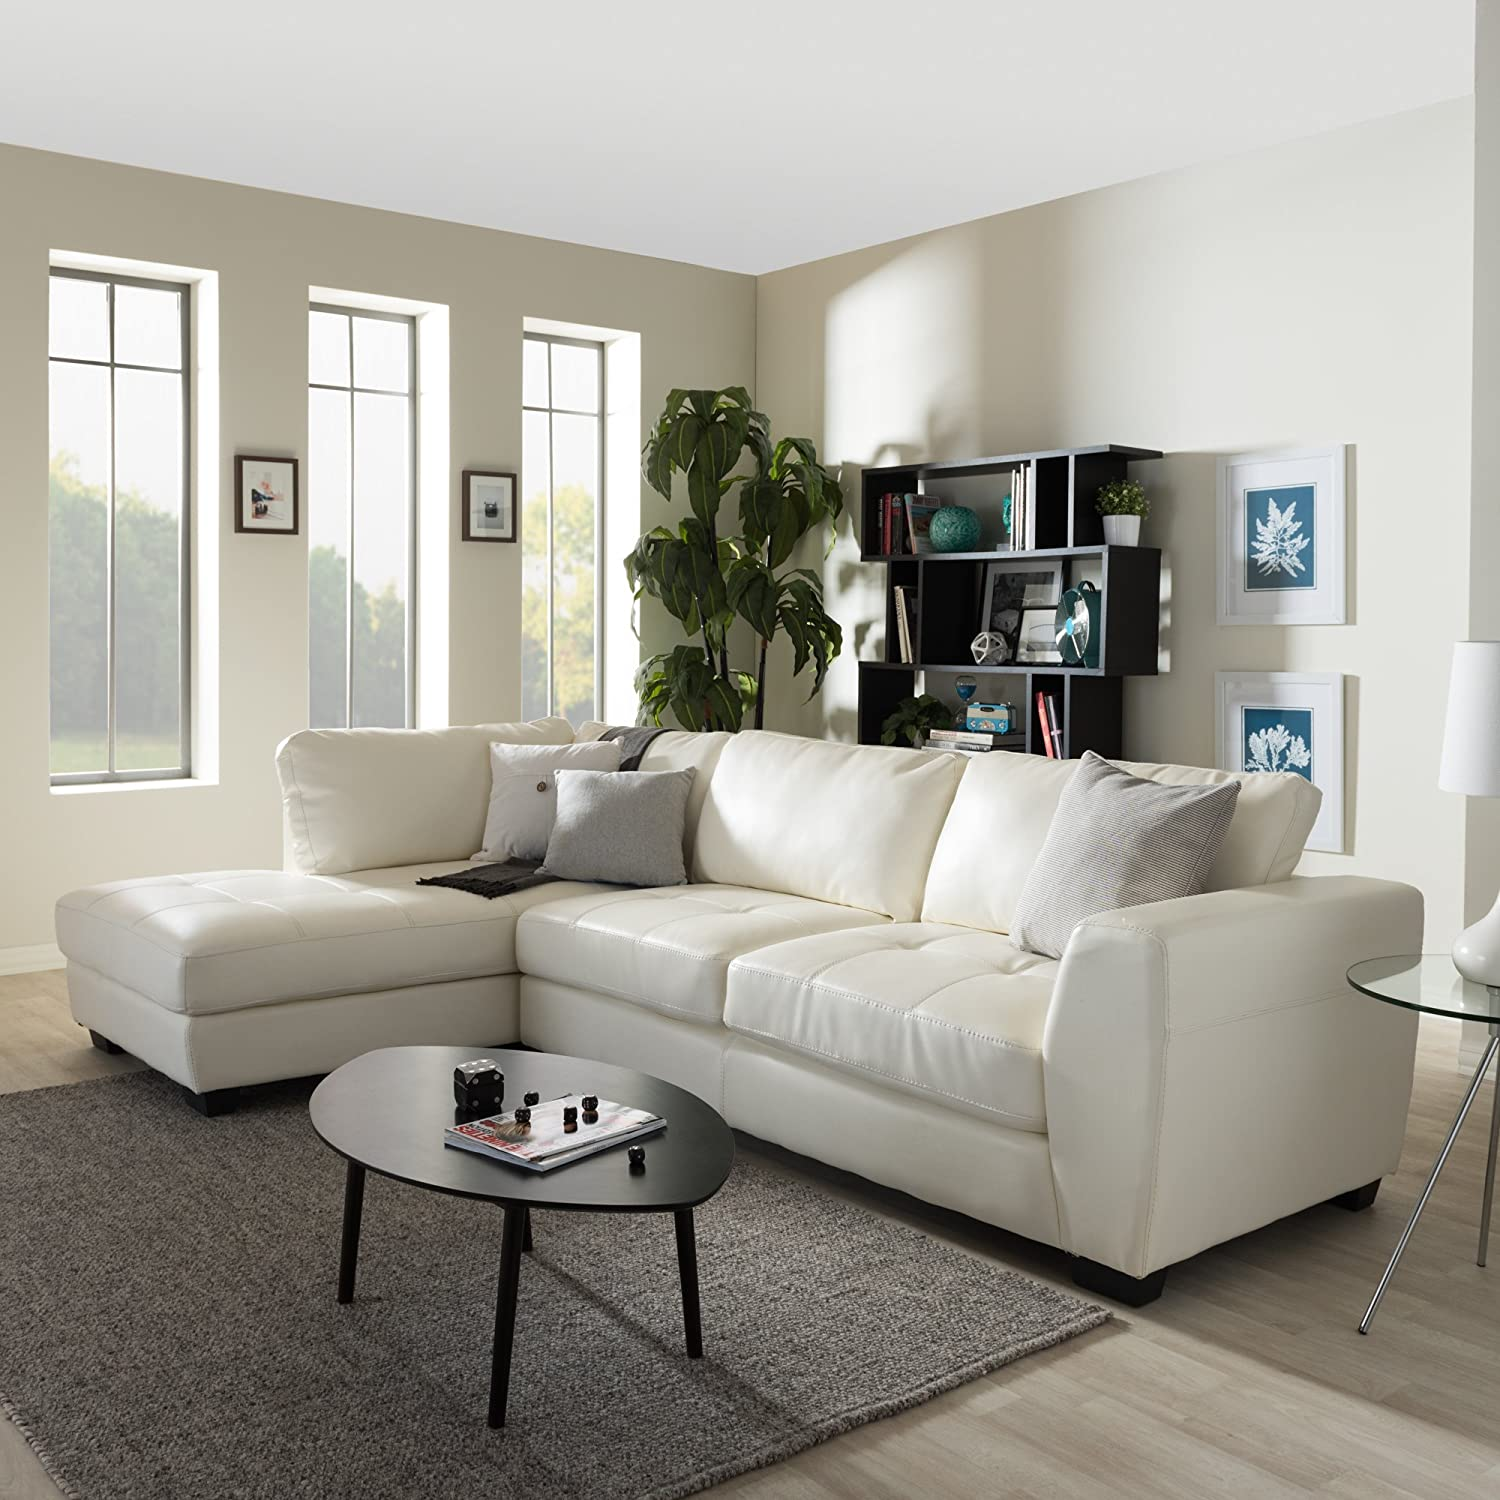 white leather living room set. Amazon com  Baxton Studio Orland Leather Modern Sectional Sofa Set with Left Facing Chaise White Kitchen Dining